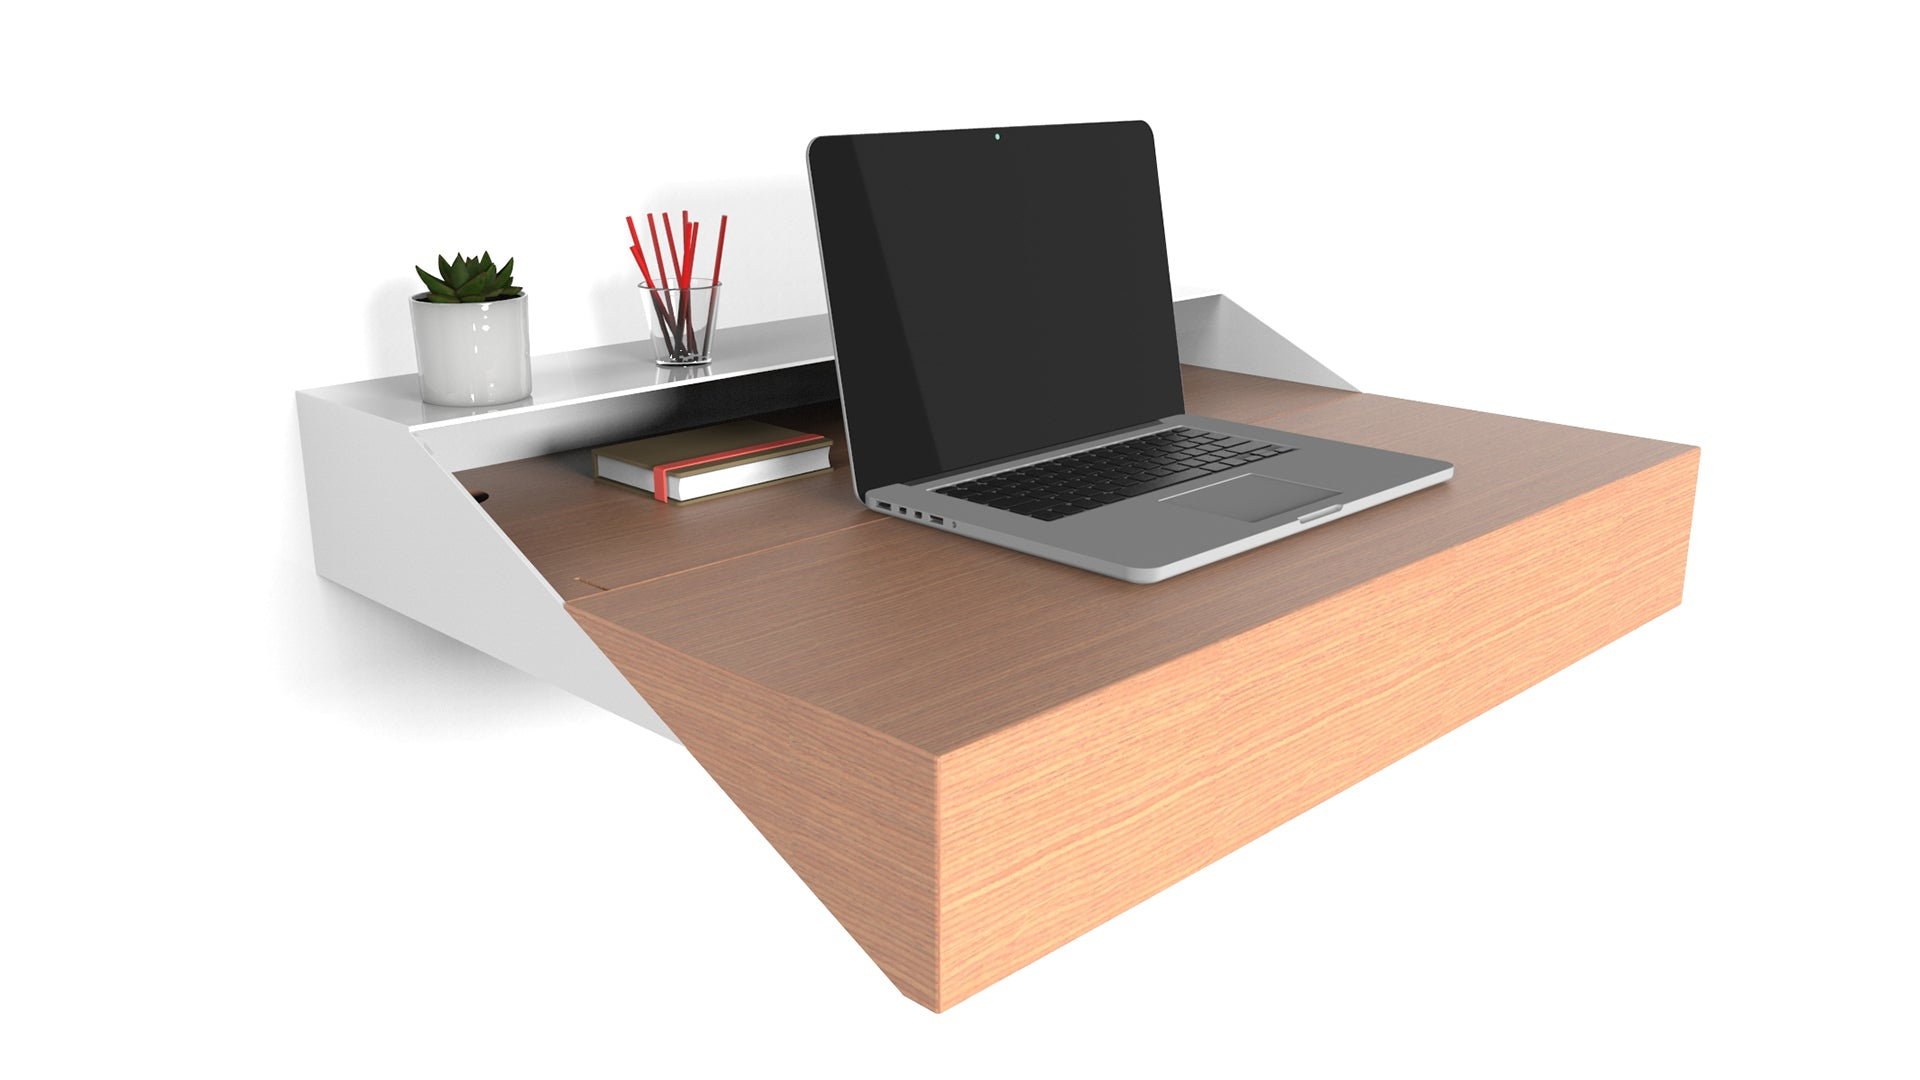 Hideaway Wall Desk | Rift Oak | Expandable Worktop | Ideal for Home-Office | PRE-ORDER NOW ships Feb 25th